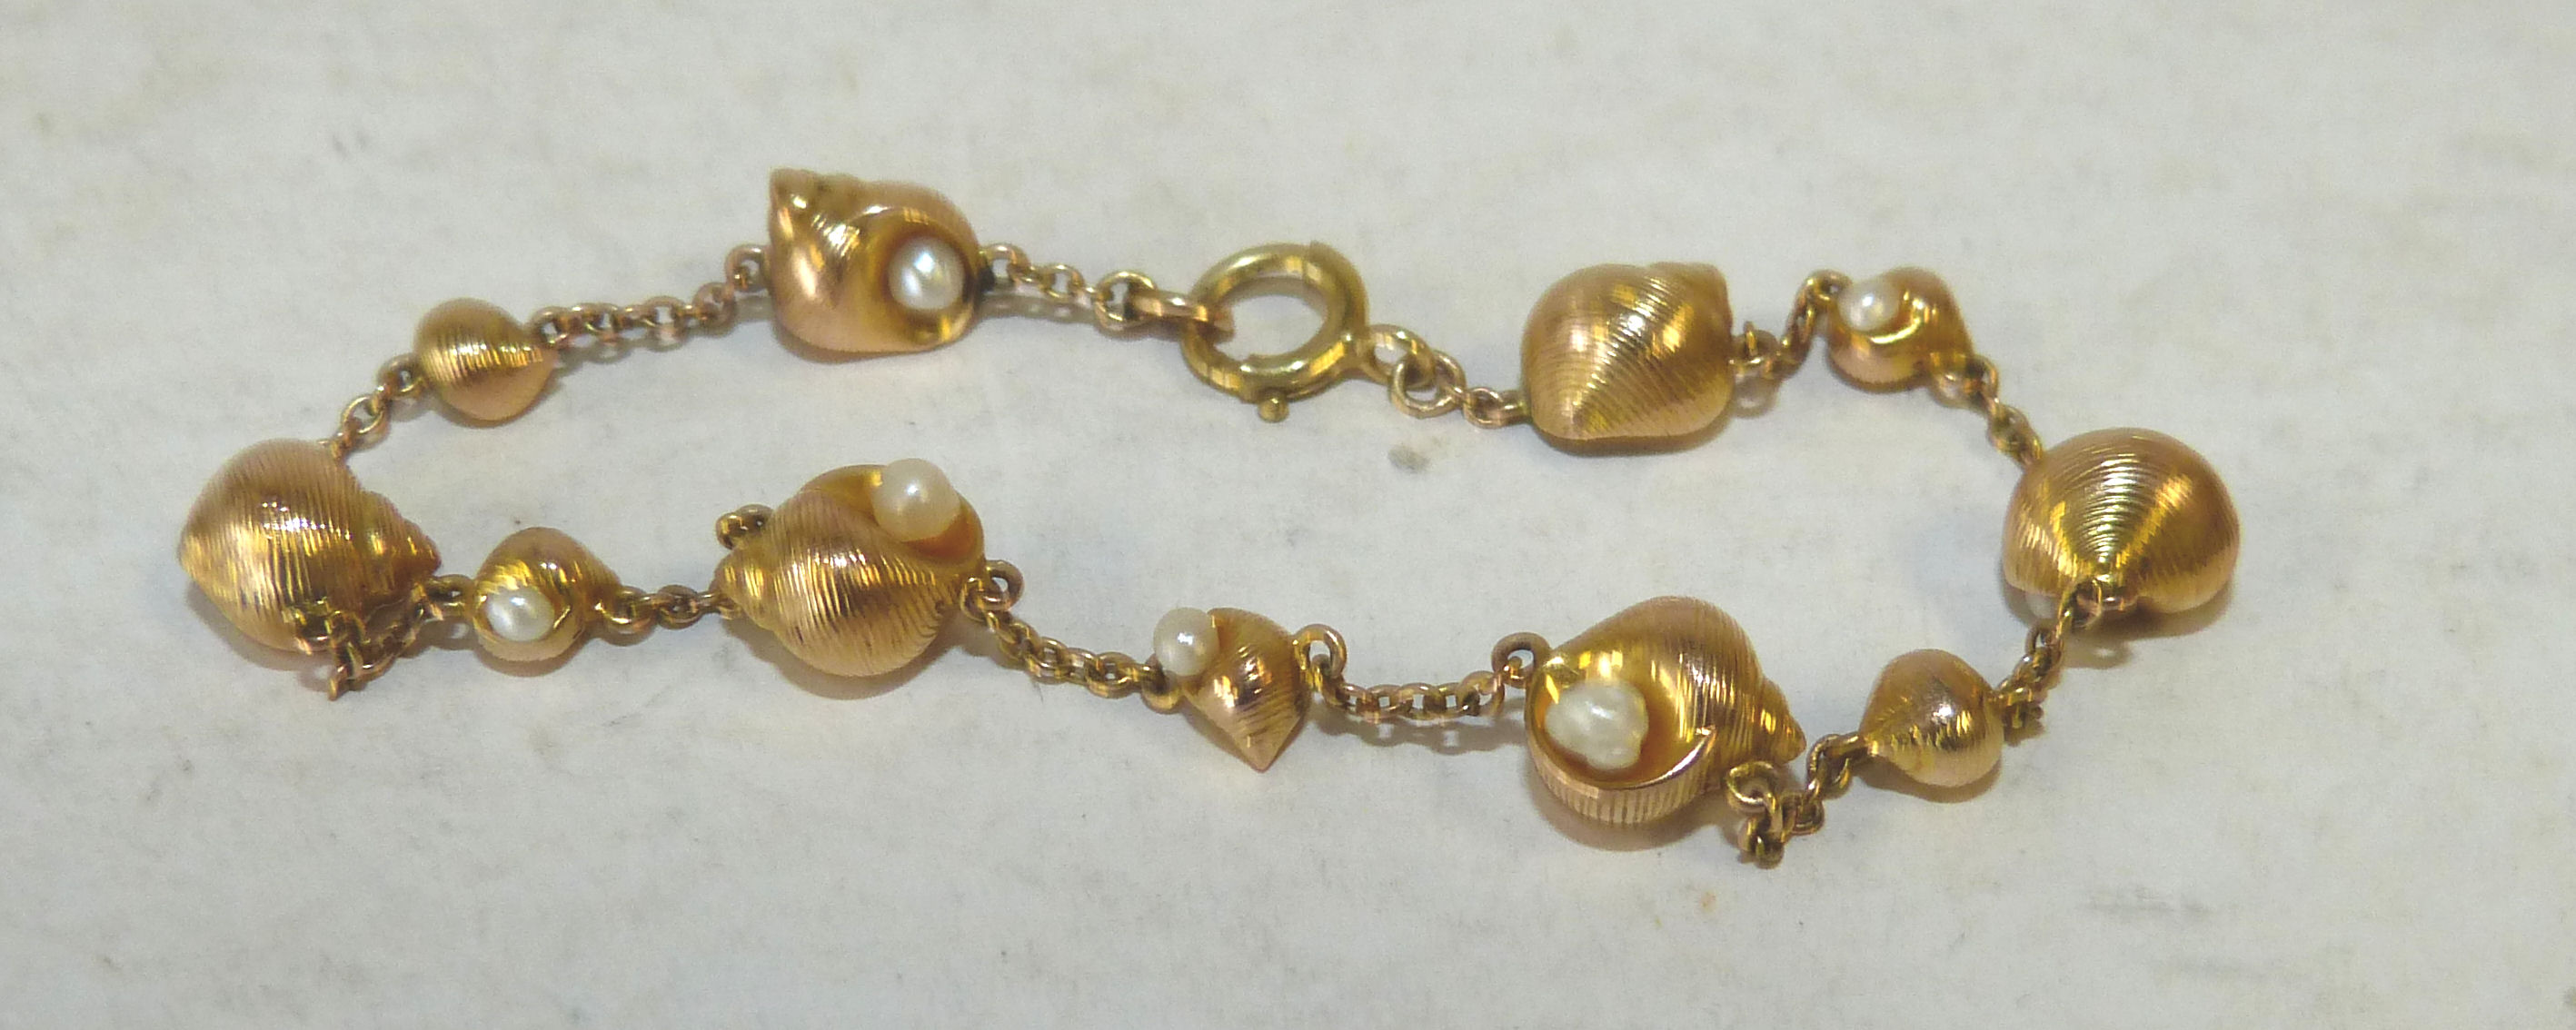 A Gold Linked Bracelet interspersed by shell with pearls (1 pearl missing) 6gms gross